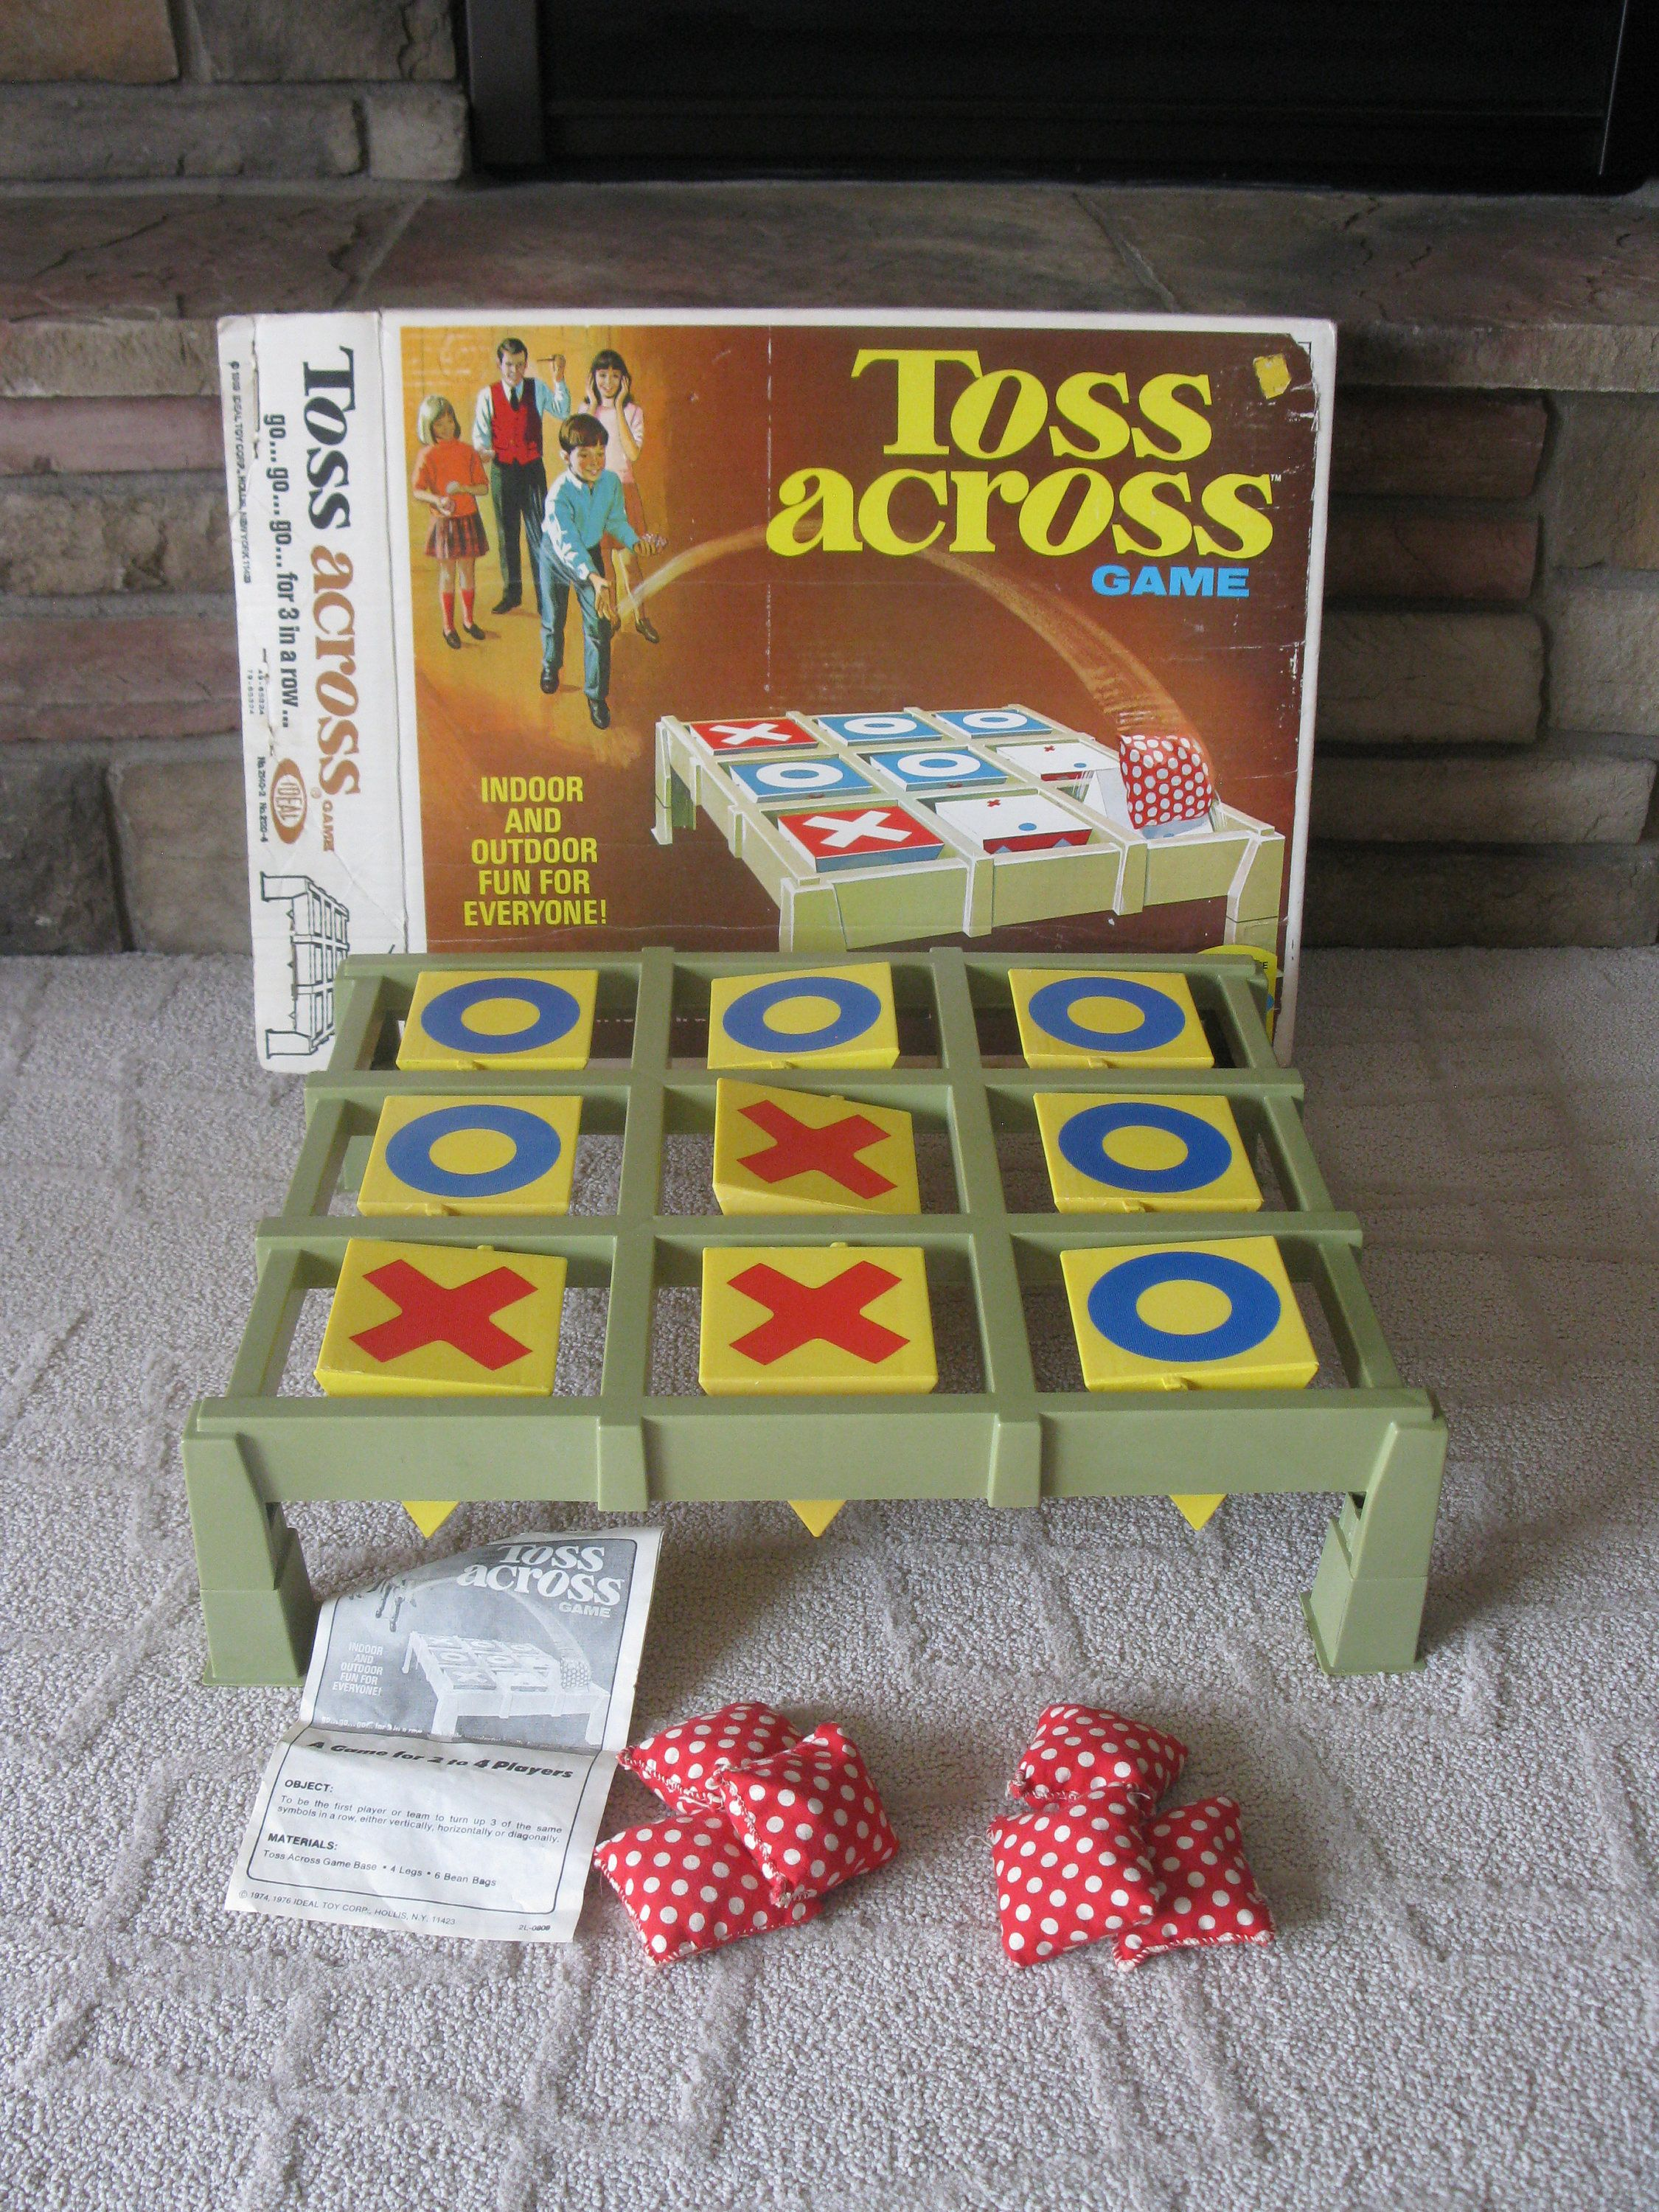 Vintage 1969 Toss Across Game By Ideal Complete With Bags